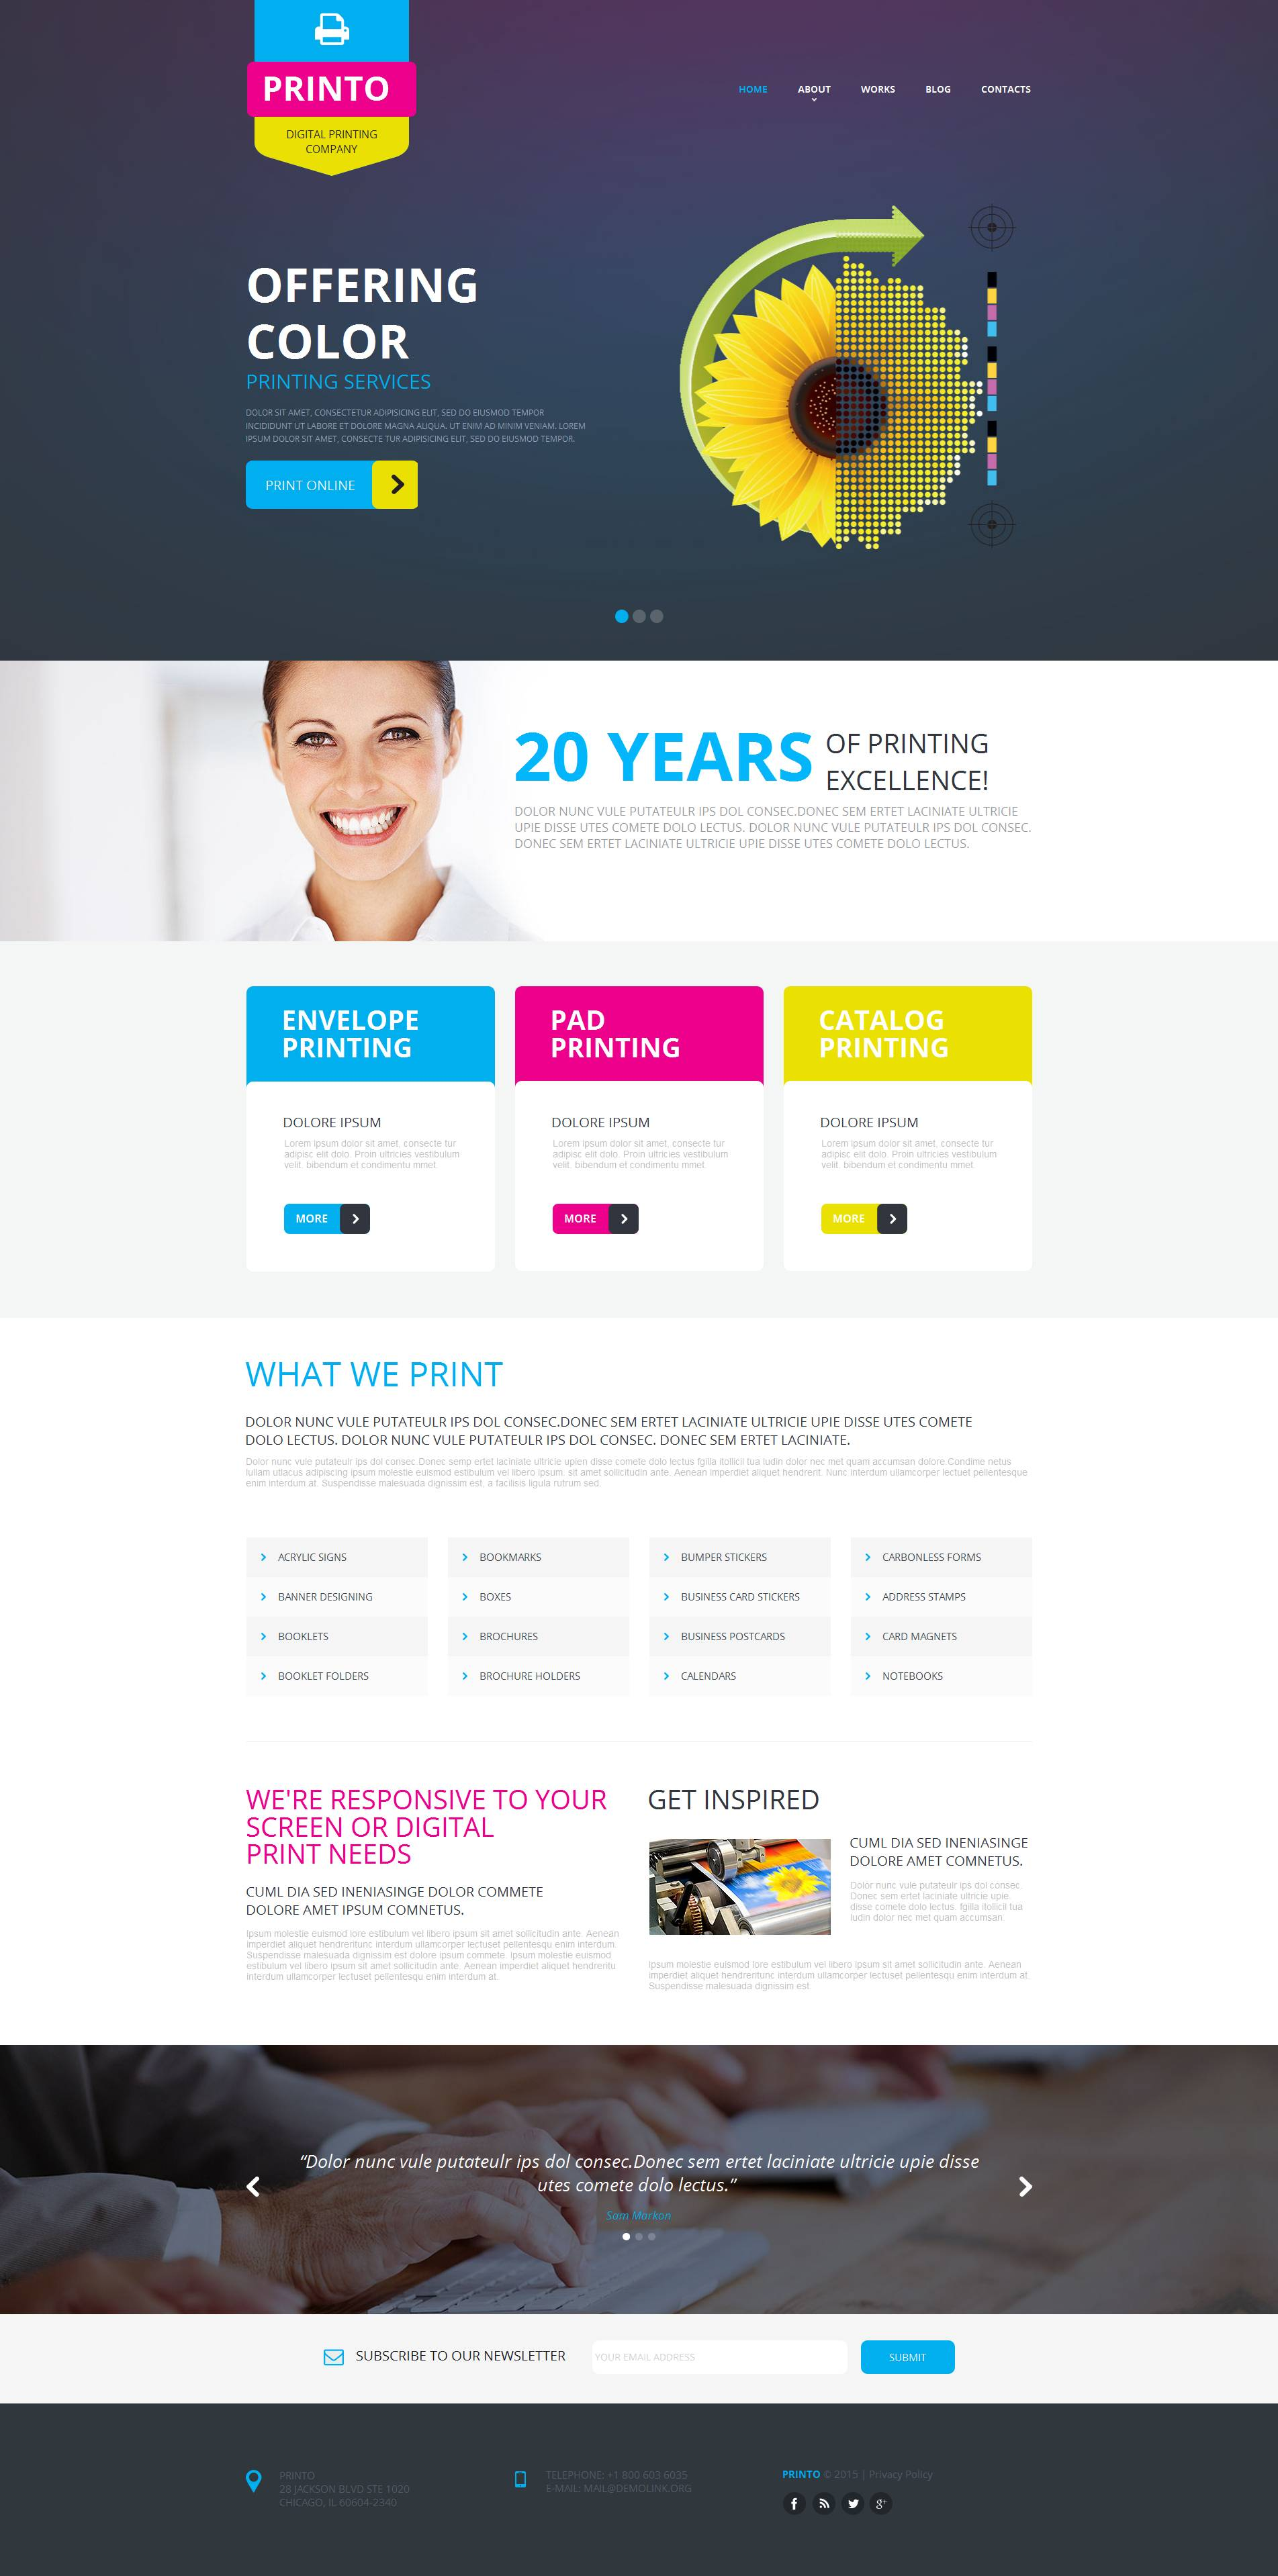 The Printo Printing Moto CMS HTML Design 53050, one of the best Moto CMS HTML templates of its kind (art & photography), also known as printo printing Moto CMS HTML template, services company Moto CMS HTML template, polygraphy Moto CMS HTML template, technology Moto CMS HTML template, equipment Moto CMS HTML template, color Moto CMS HTML template, print Moto CMS HTML template, printer Moto CMS HTML template, offset Moto CMS HTML template, magazines Moto CMS HTML template, publication Moto CMS HTML template, catalogue Moto CMS HTML template, newspapers Moto CMS HTML template, bind Moto CMS HTML template, books Moto CMS HTML template, publisher Moto CMS HTML template, fulfillment Moto CMS HTML template, services Moto CMS HTML template, products Moto CMS HTML template, business Moto CMS HTML template, cards Moto CMS HTML template, photos Moto CMS HTML template, calendars Moto CMS HTML template, labels Moto CMS HTML template, digital replication Moto CMS HTML template, booklet and related with printo printing, services company, polygraphy, technology, equipment, color, print, printer, offset, magazines, publication, catalogue, newspapers, bind, books, publisher, fulfillment, services, products, business, cards, photos, calendars, labels, digital replication, booklet, etc.